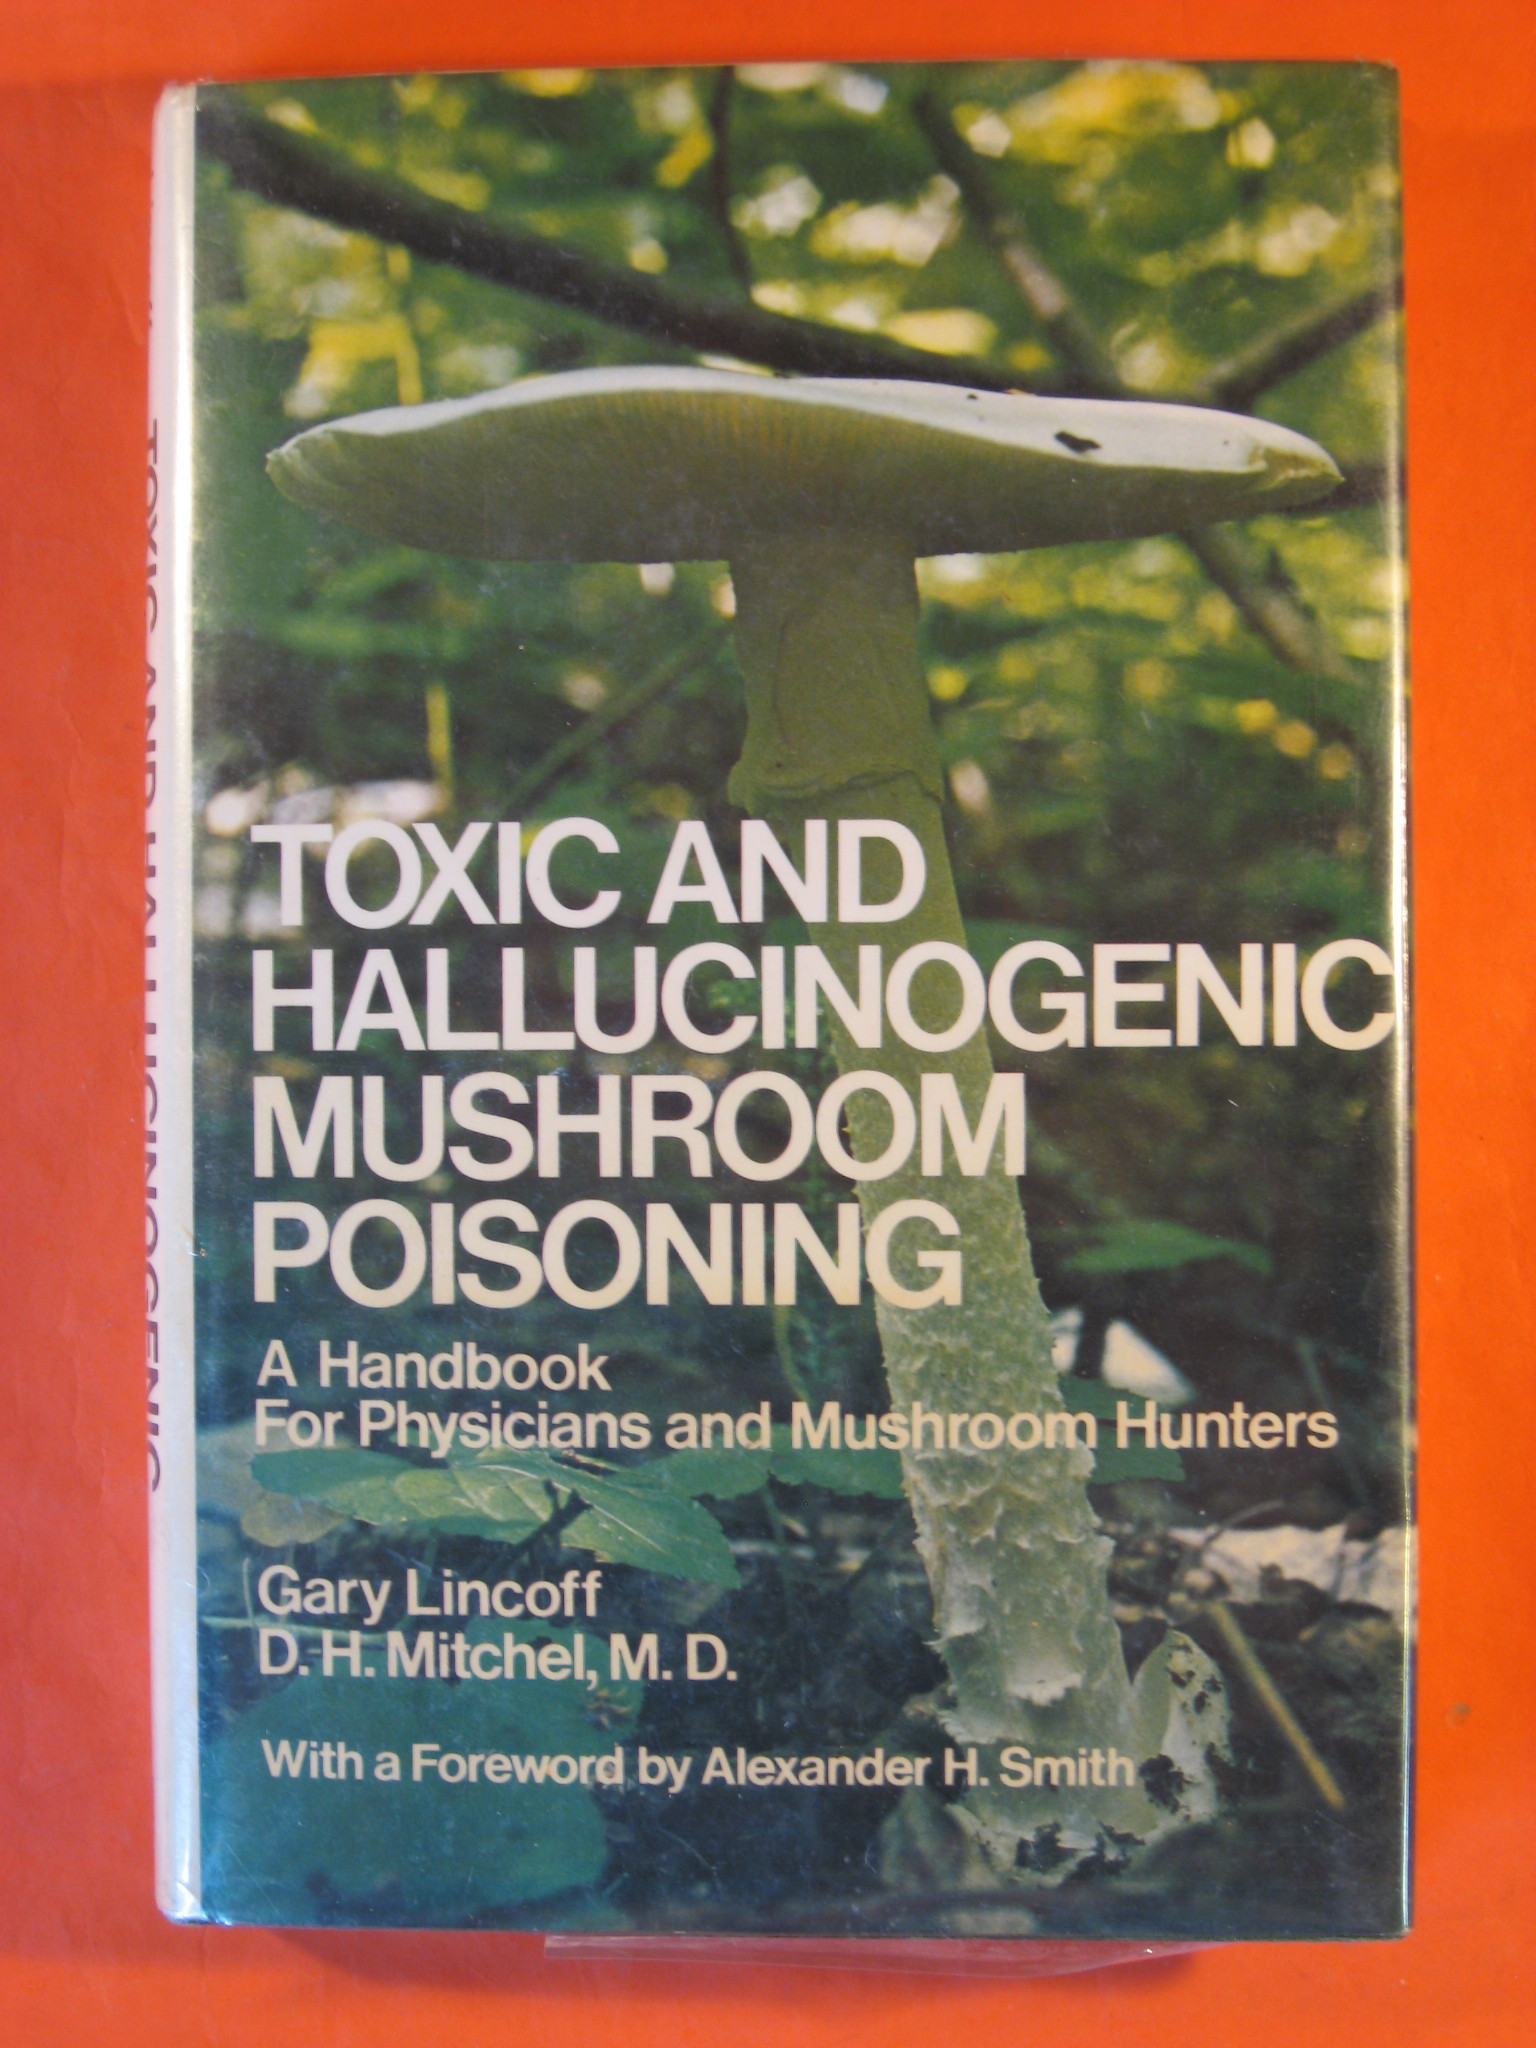 Toxic and Hallucinogenic Mushroom Poisoning: A Handbook for Physicians and Mushroom Hunters, Lincoff, Gary; Mitchel, D.H.